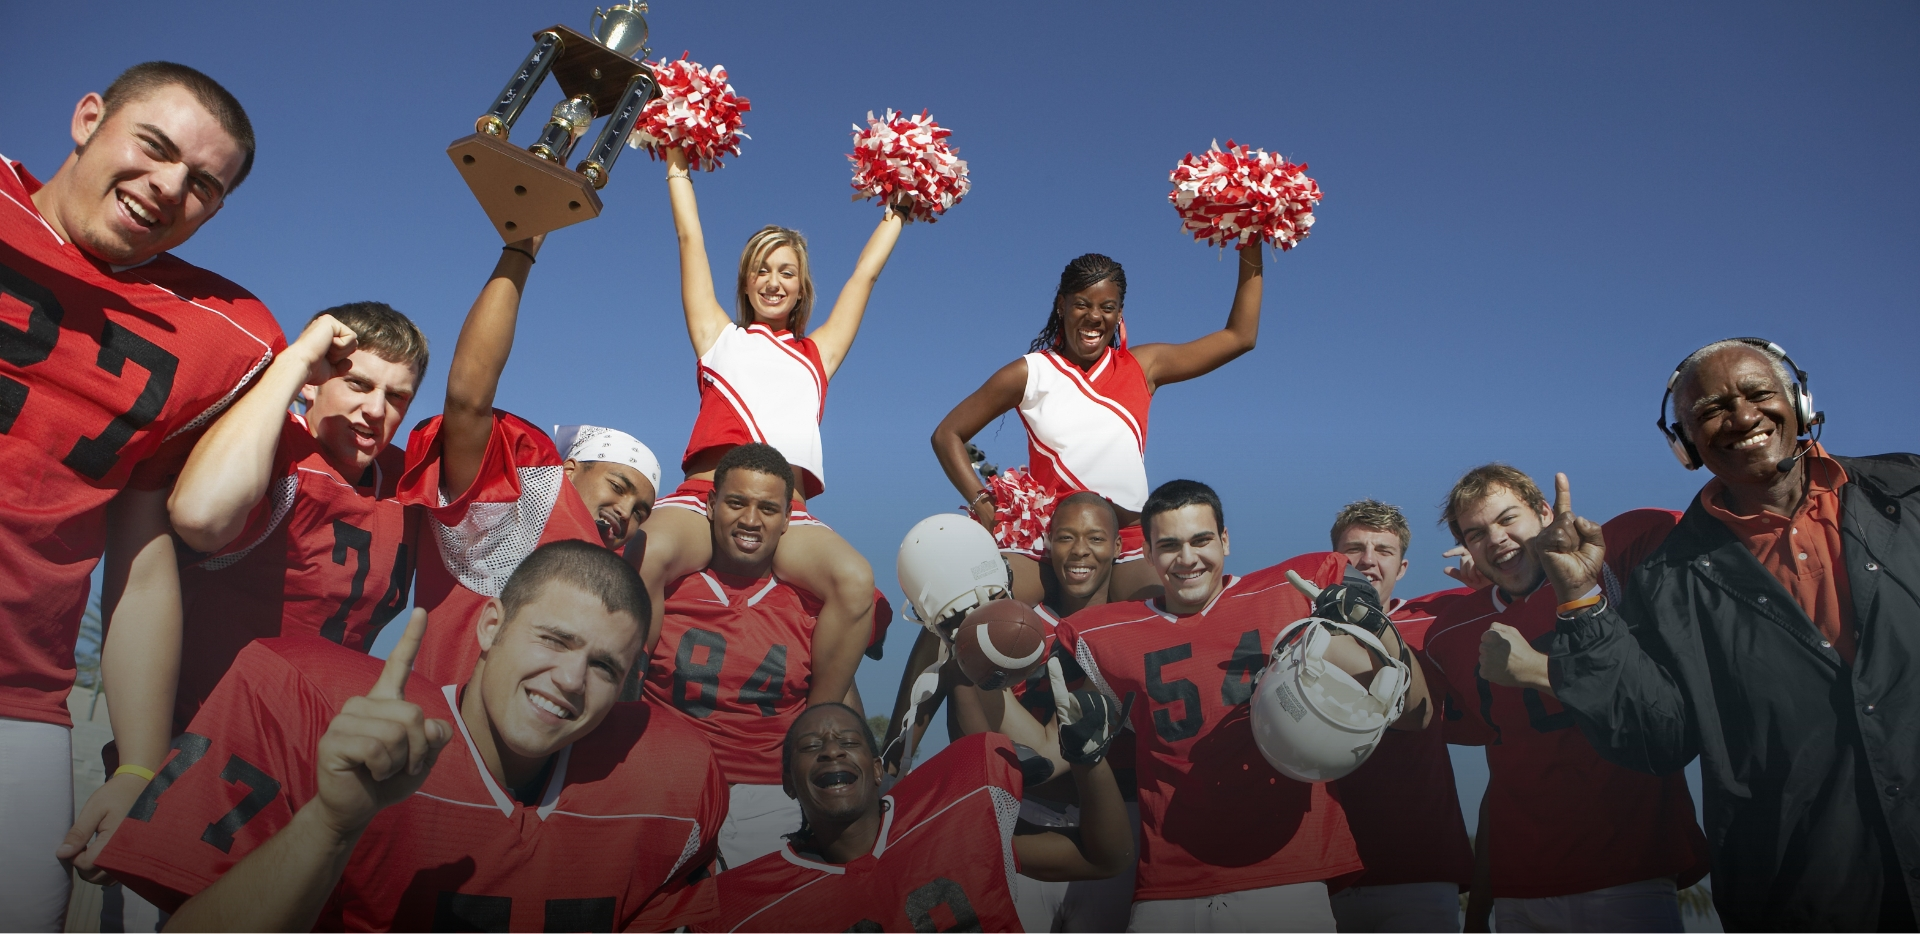 proud football players and cheerleaders with coach raise trophy to celebrate championship win